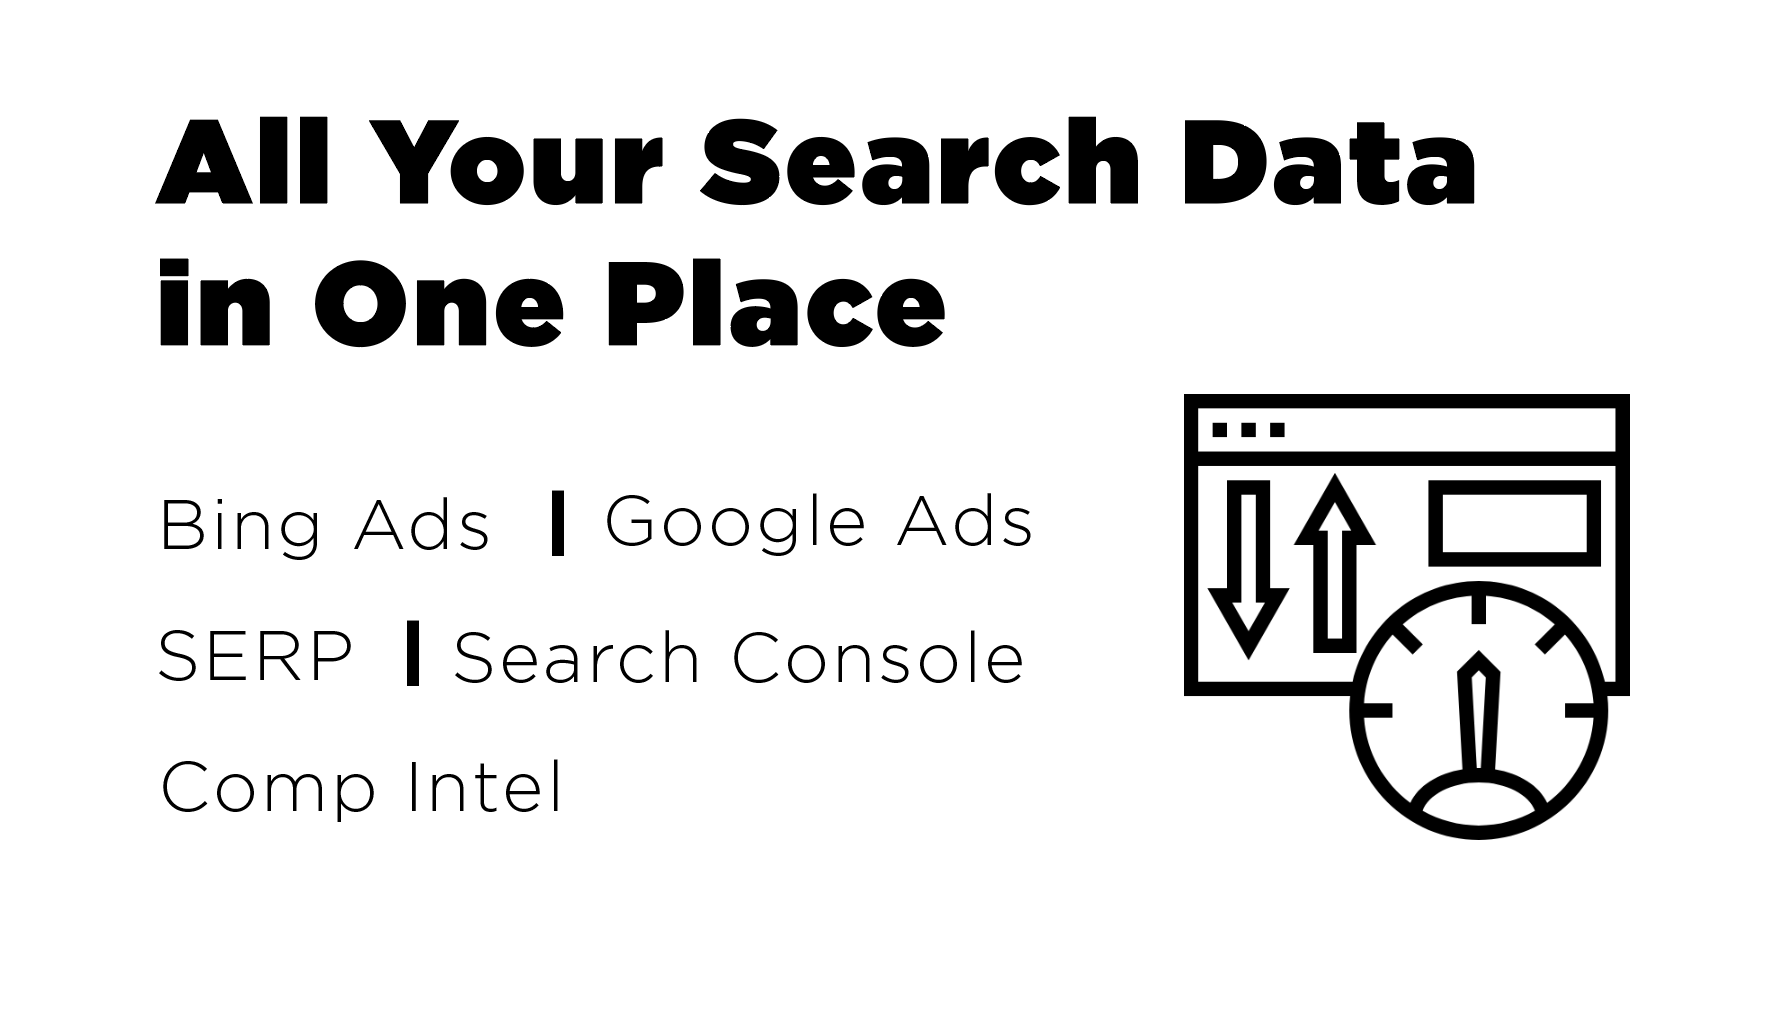 Product Feature: All Your Search Data in One Place